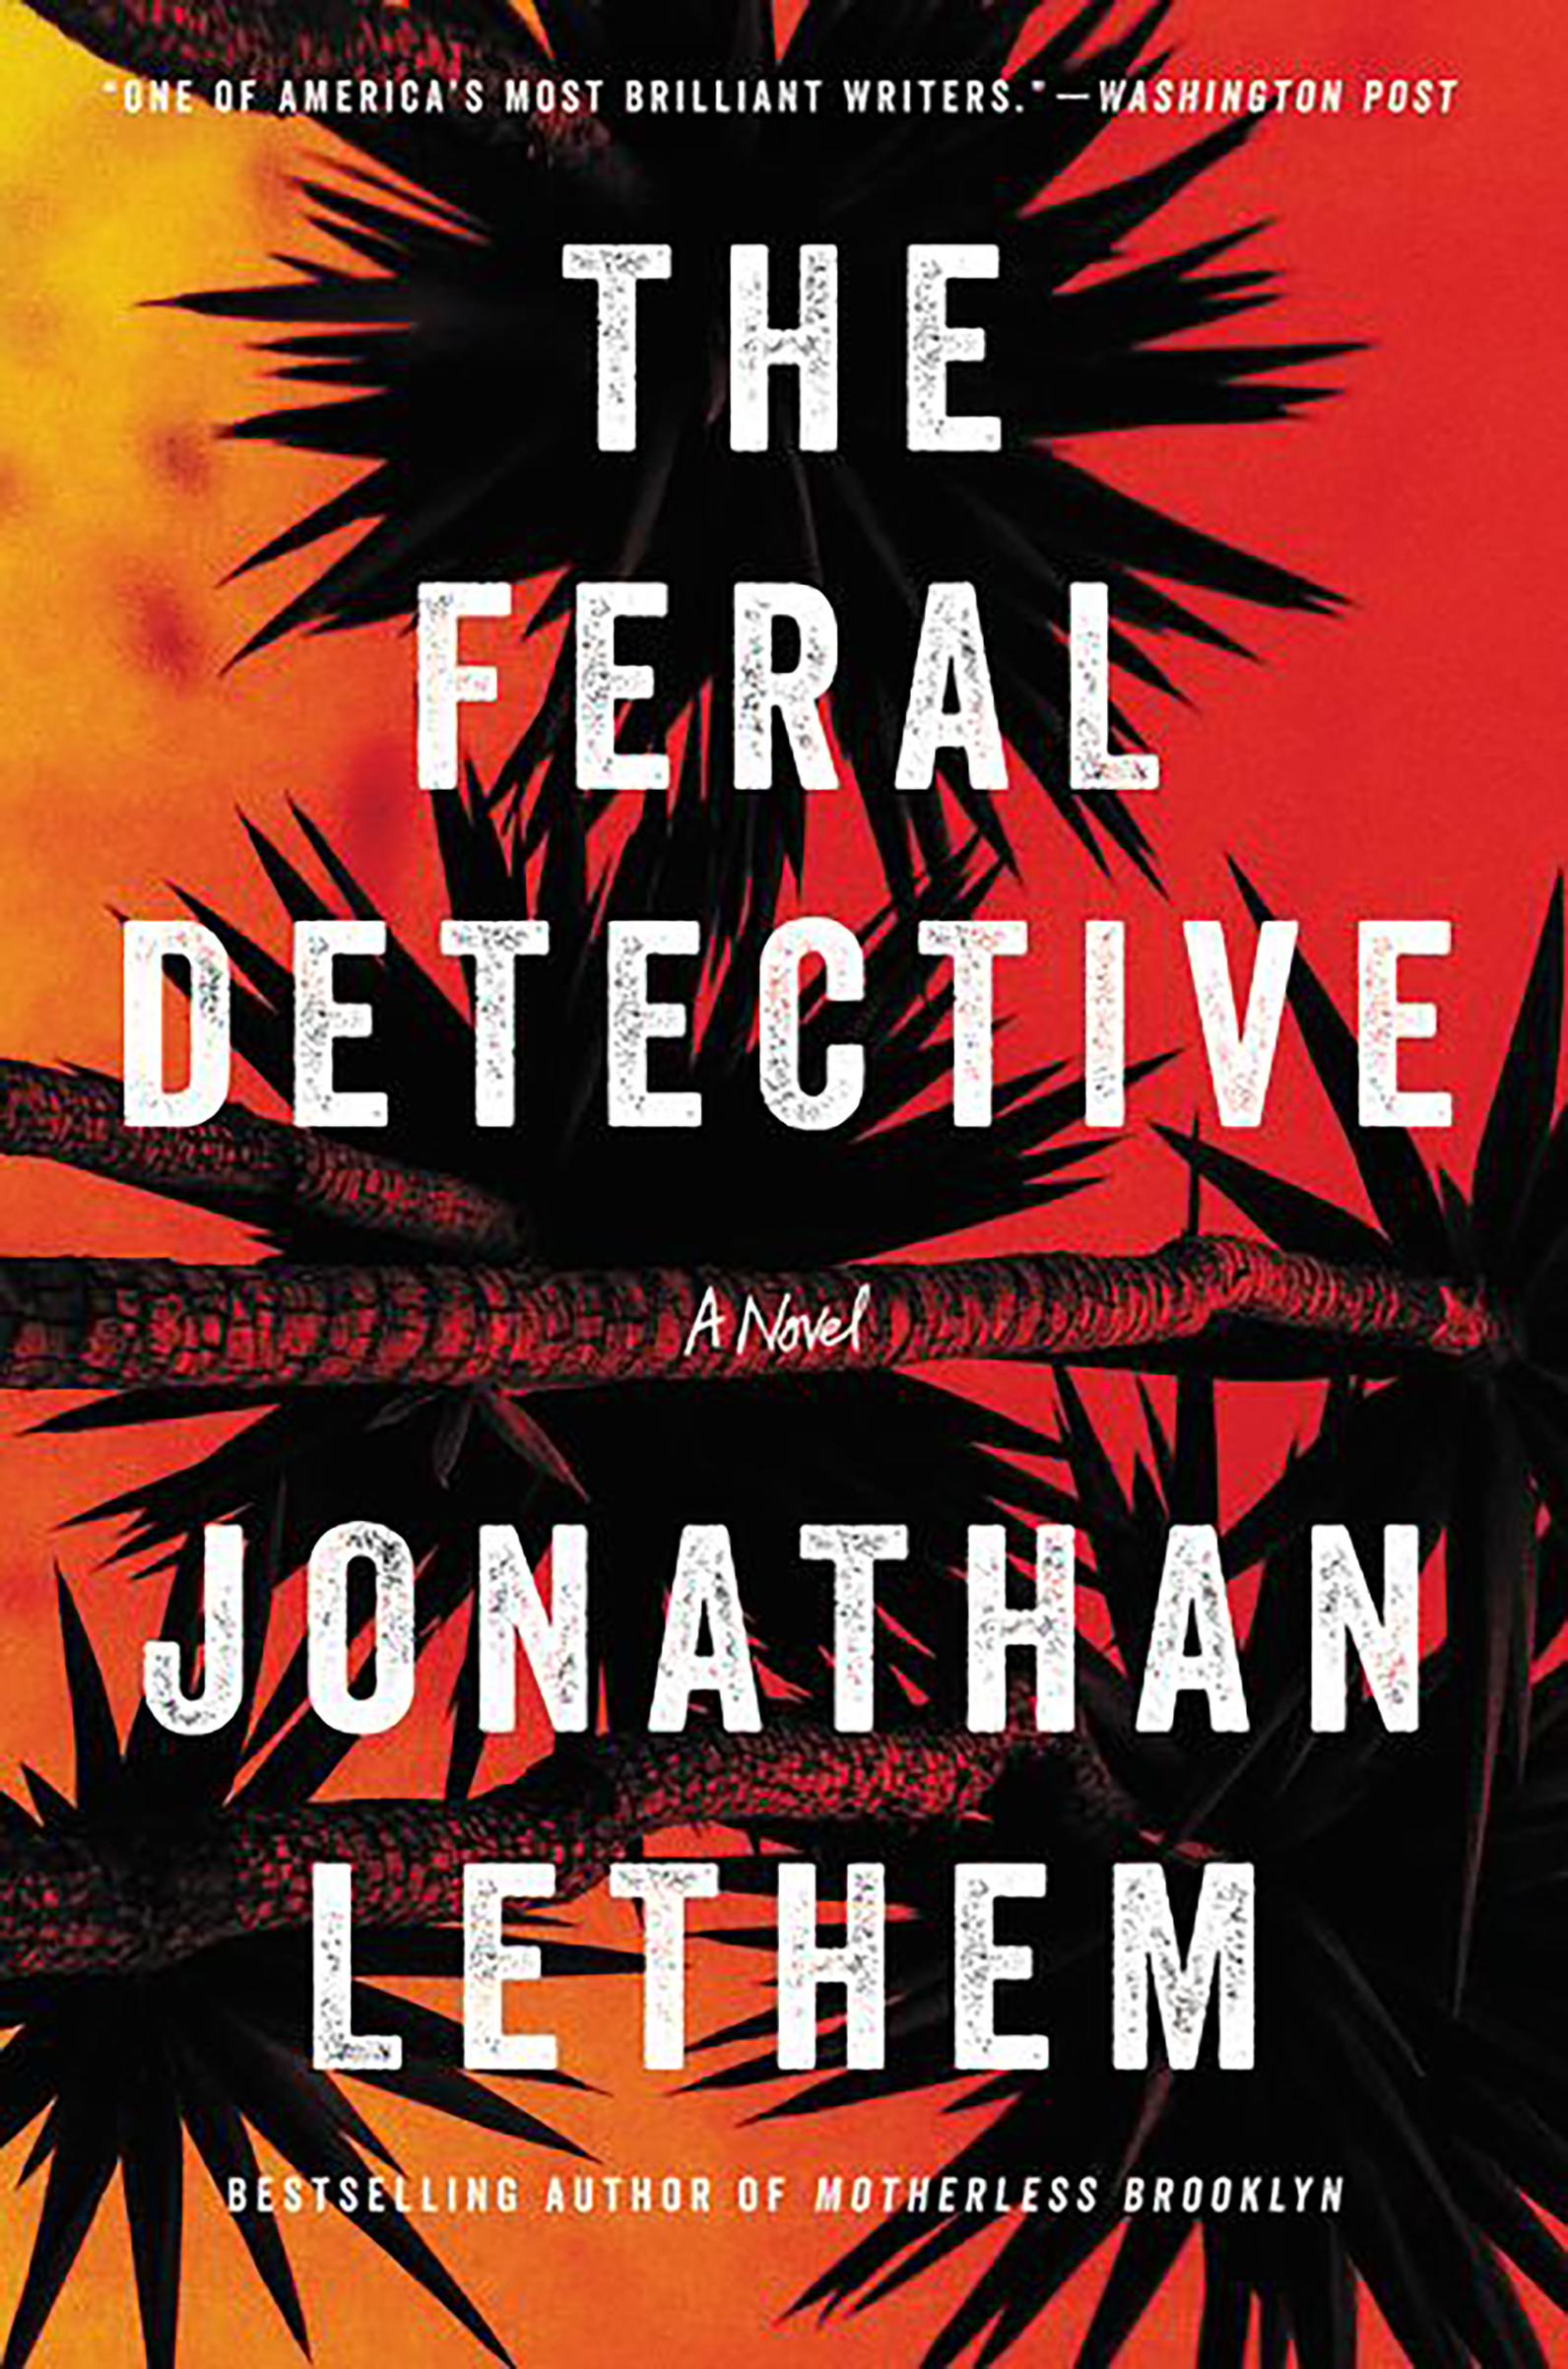 Lethem returns to detective fiction two decades after his hit Motherless Brooklyn